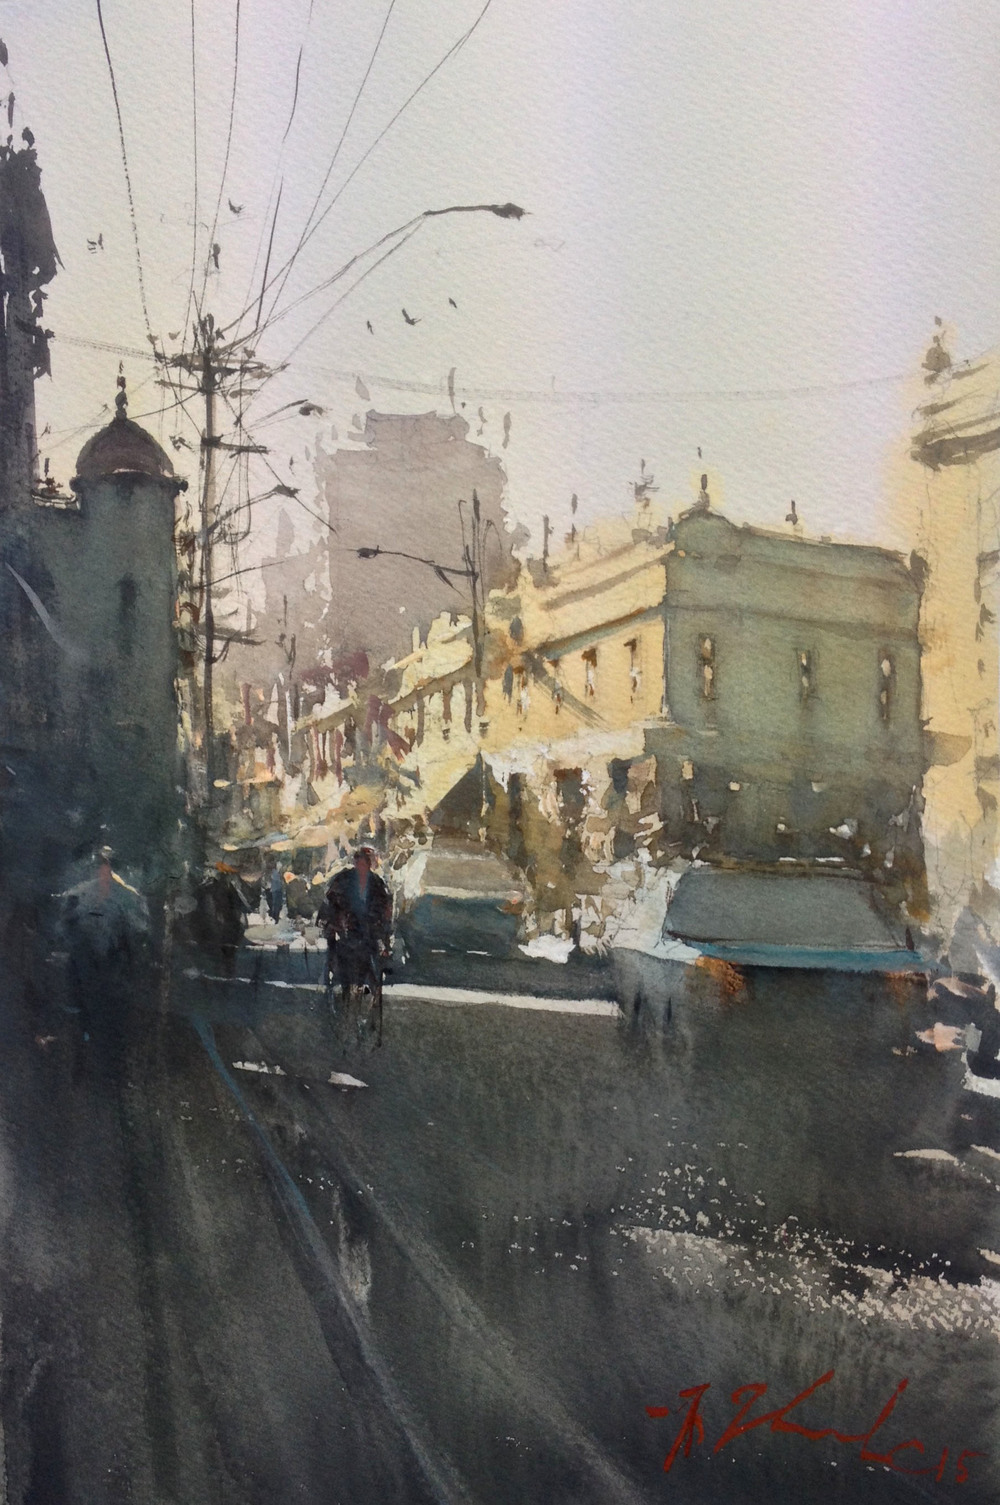 Joseph Zbukvic, Cnr Johnstone and Brunswick   Watercolour, framed, available